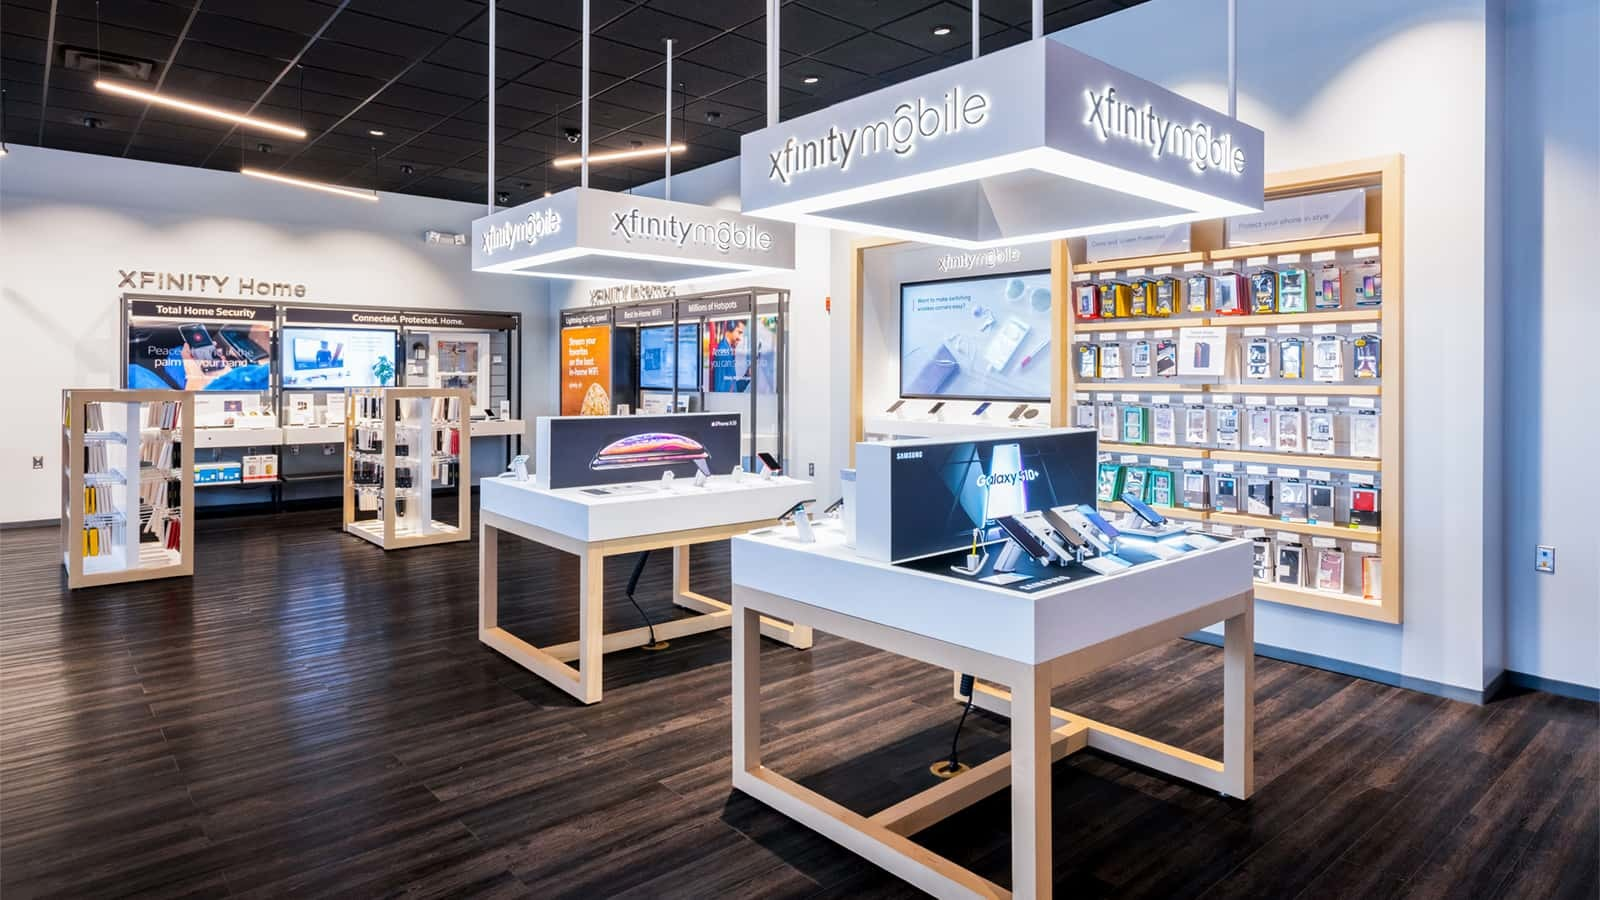 The Samsung Galaxy S10 launched in 312 Xfinity by Comcast stores.